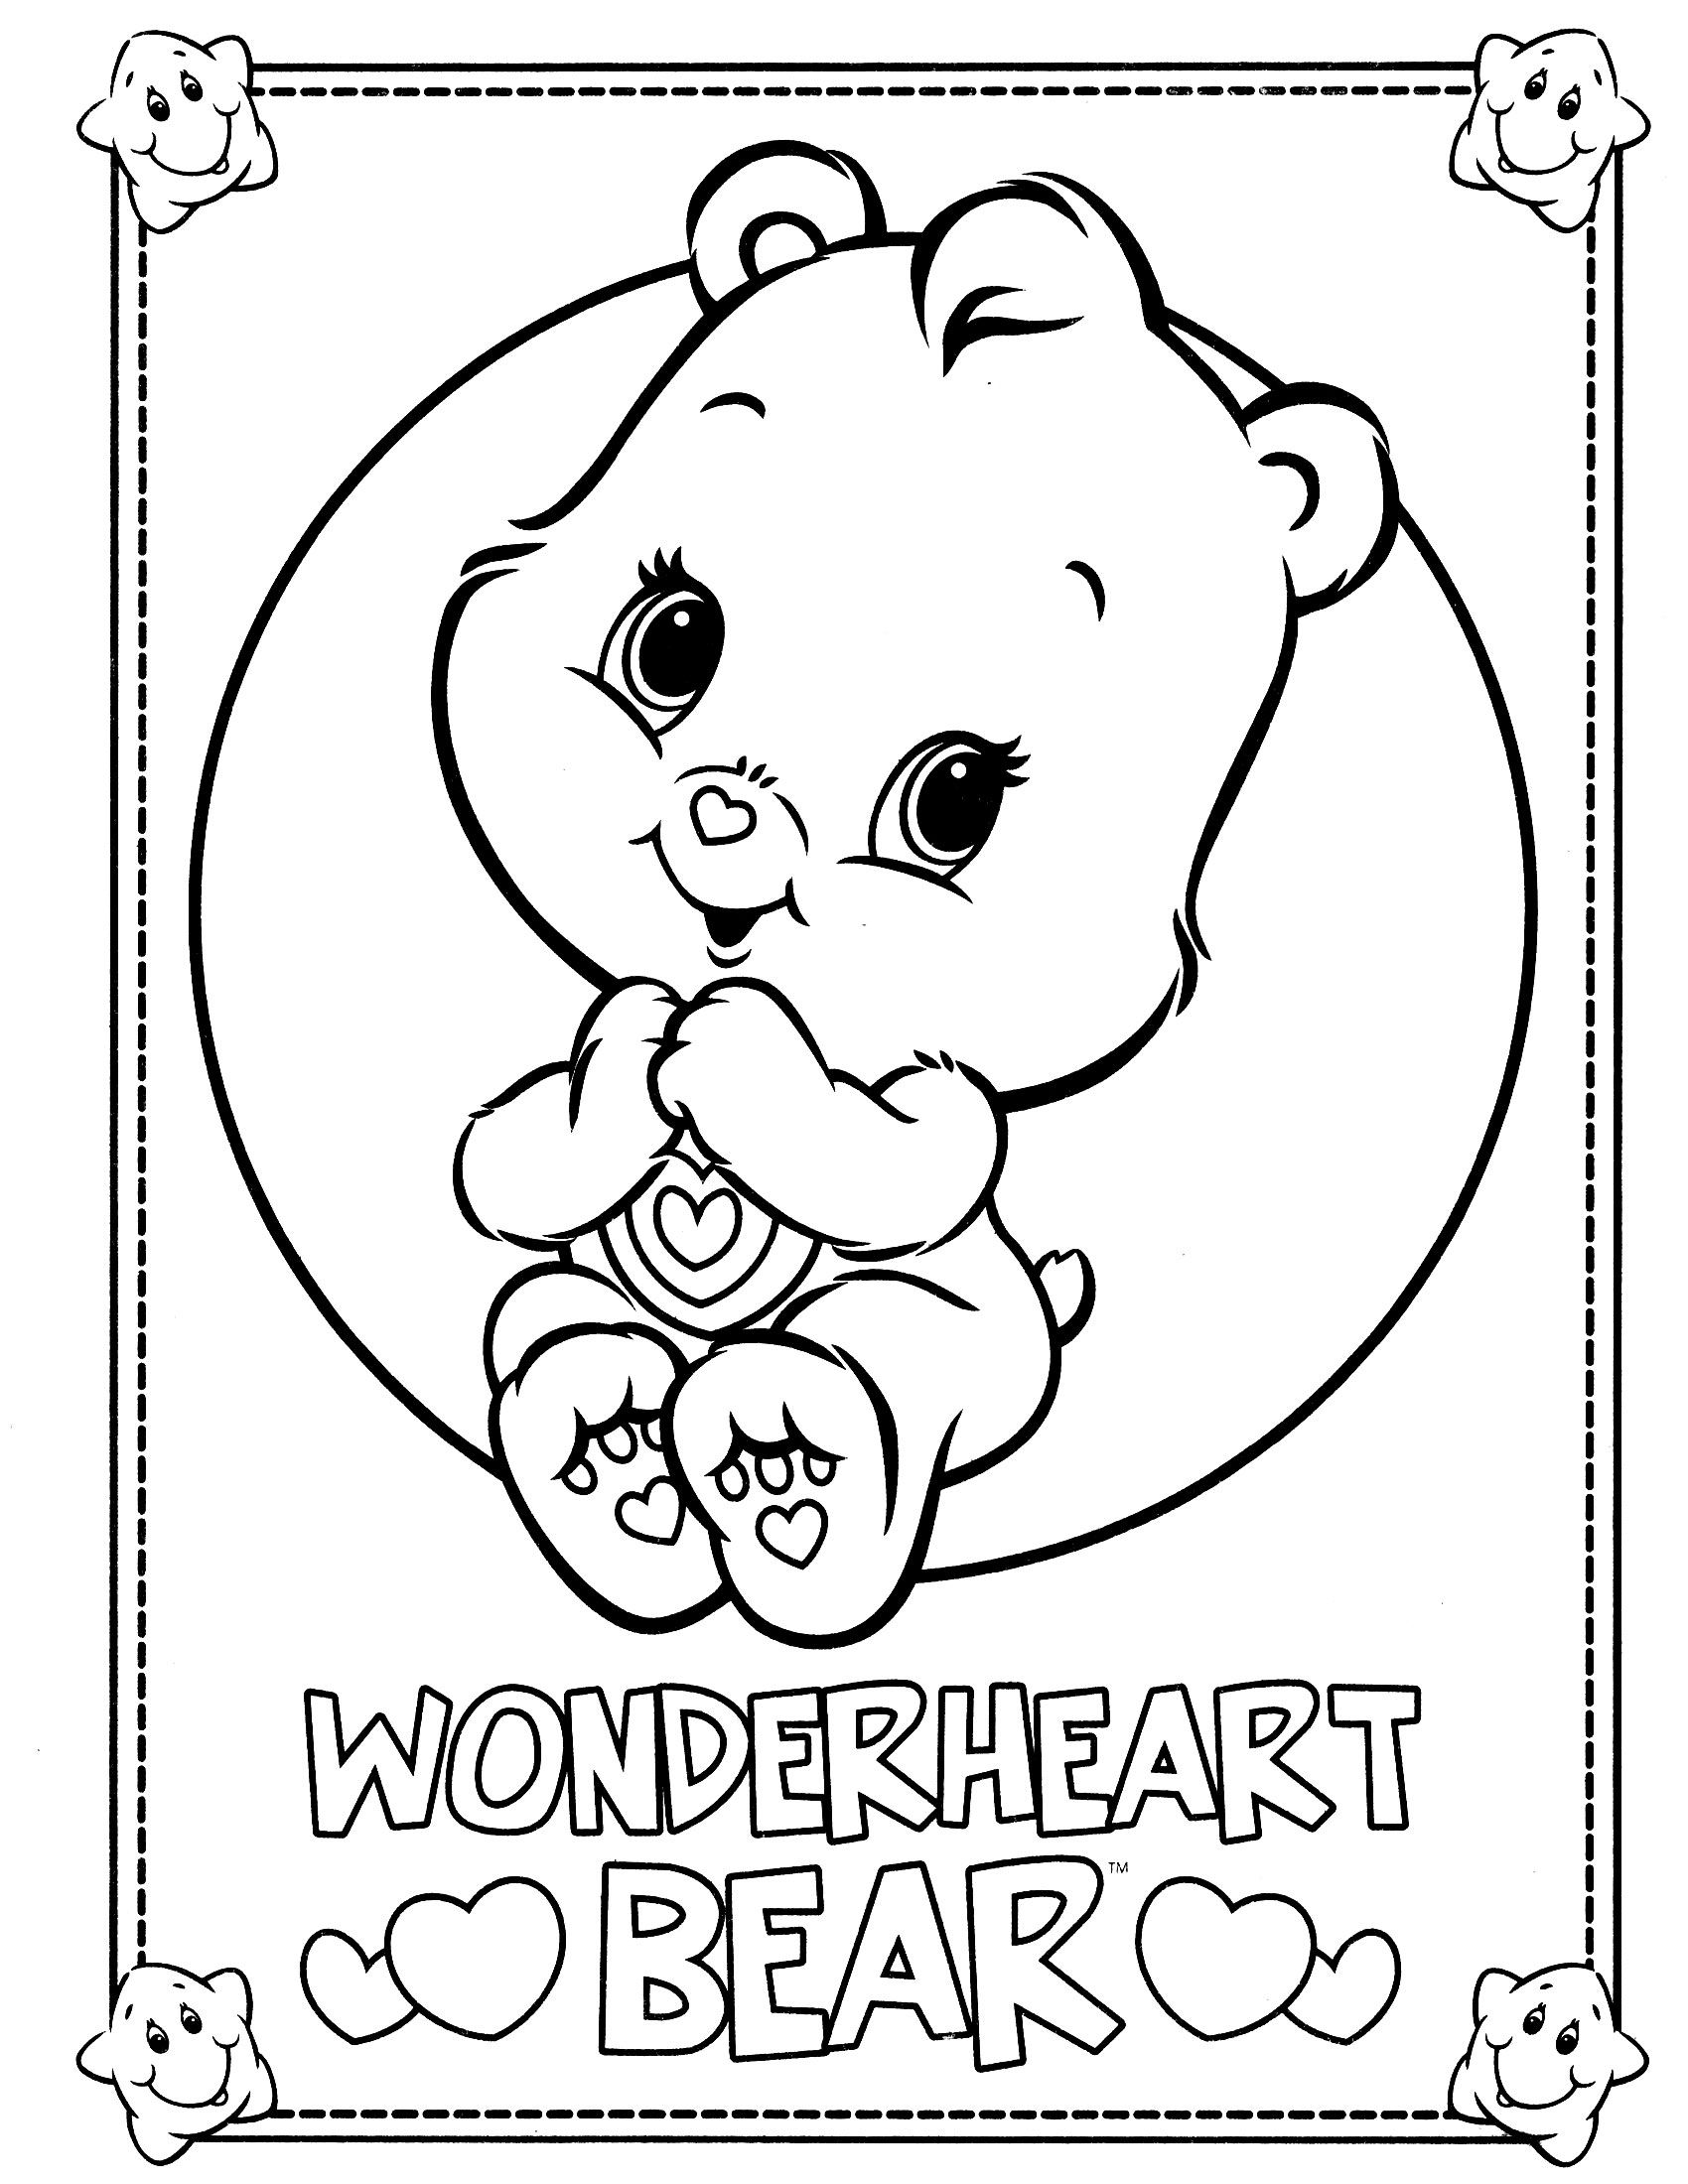 Book care coloring sheet - Care Bears Coloring Page